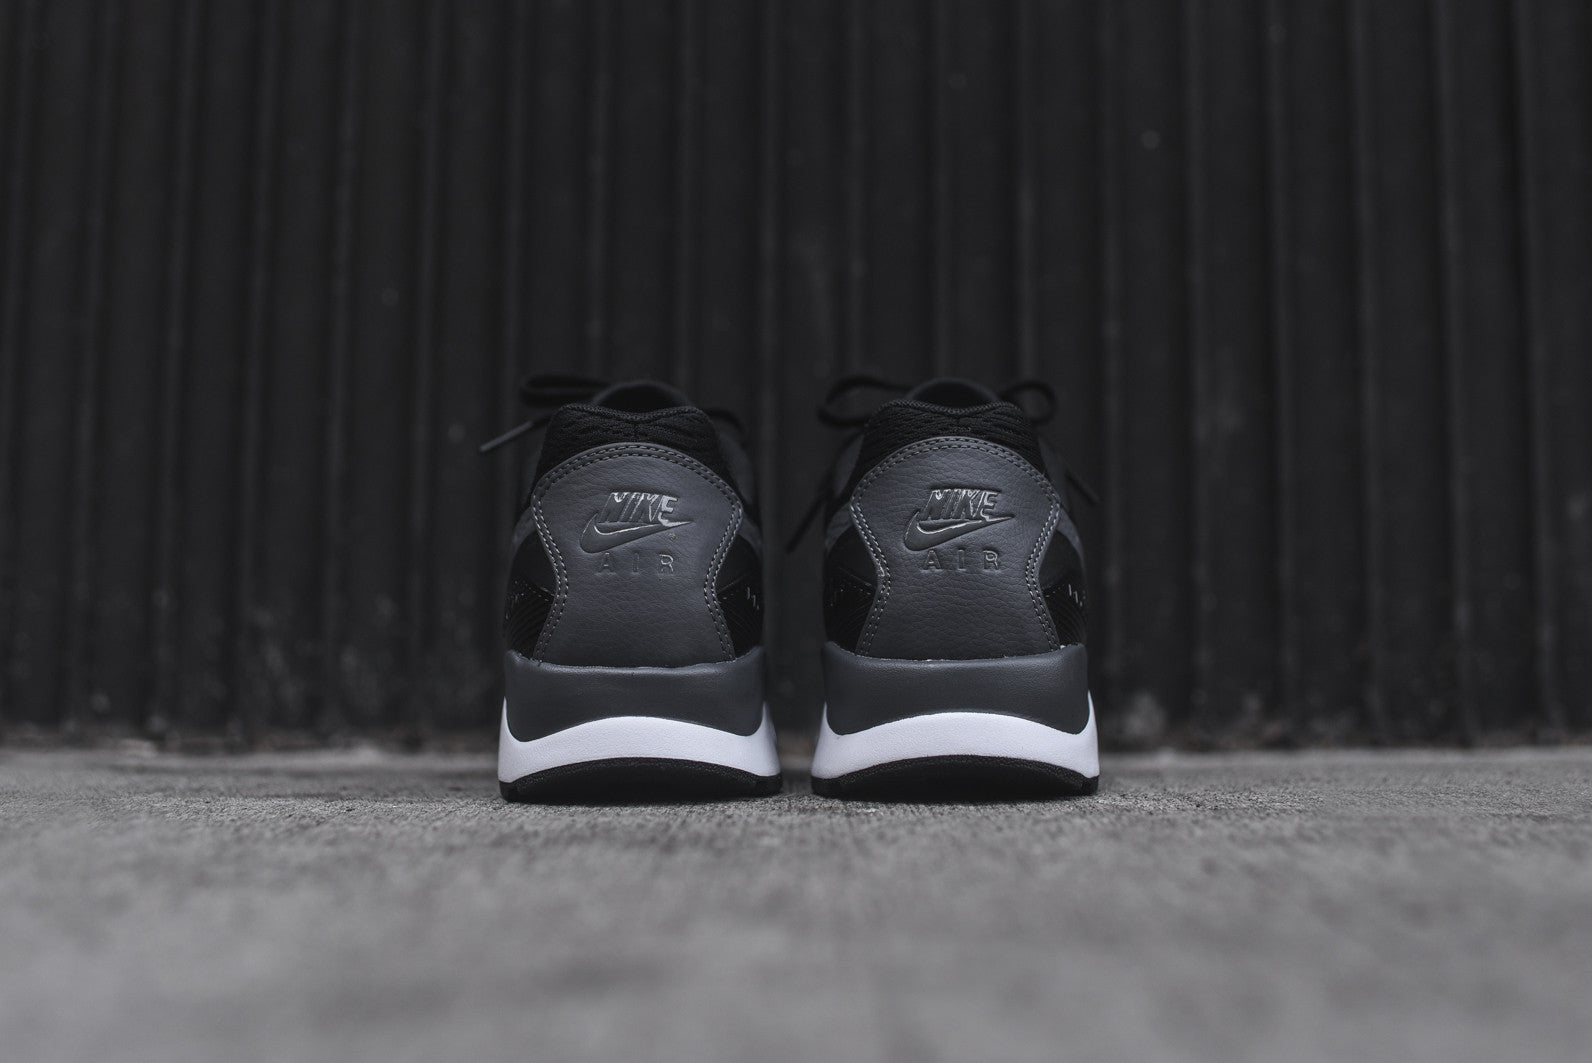 Nike WMNS Air Pegasus 92/16 - Black